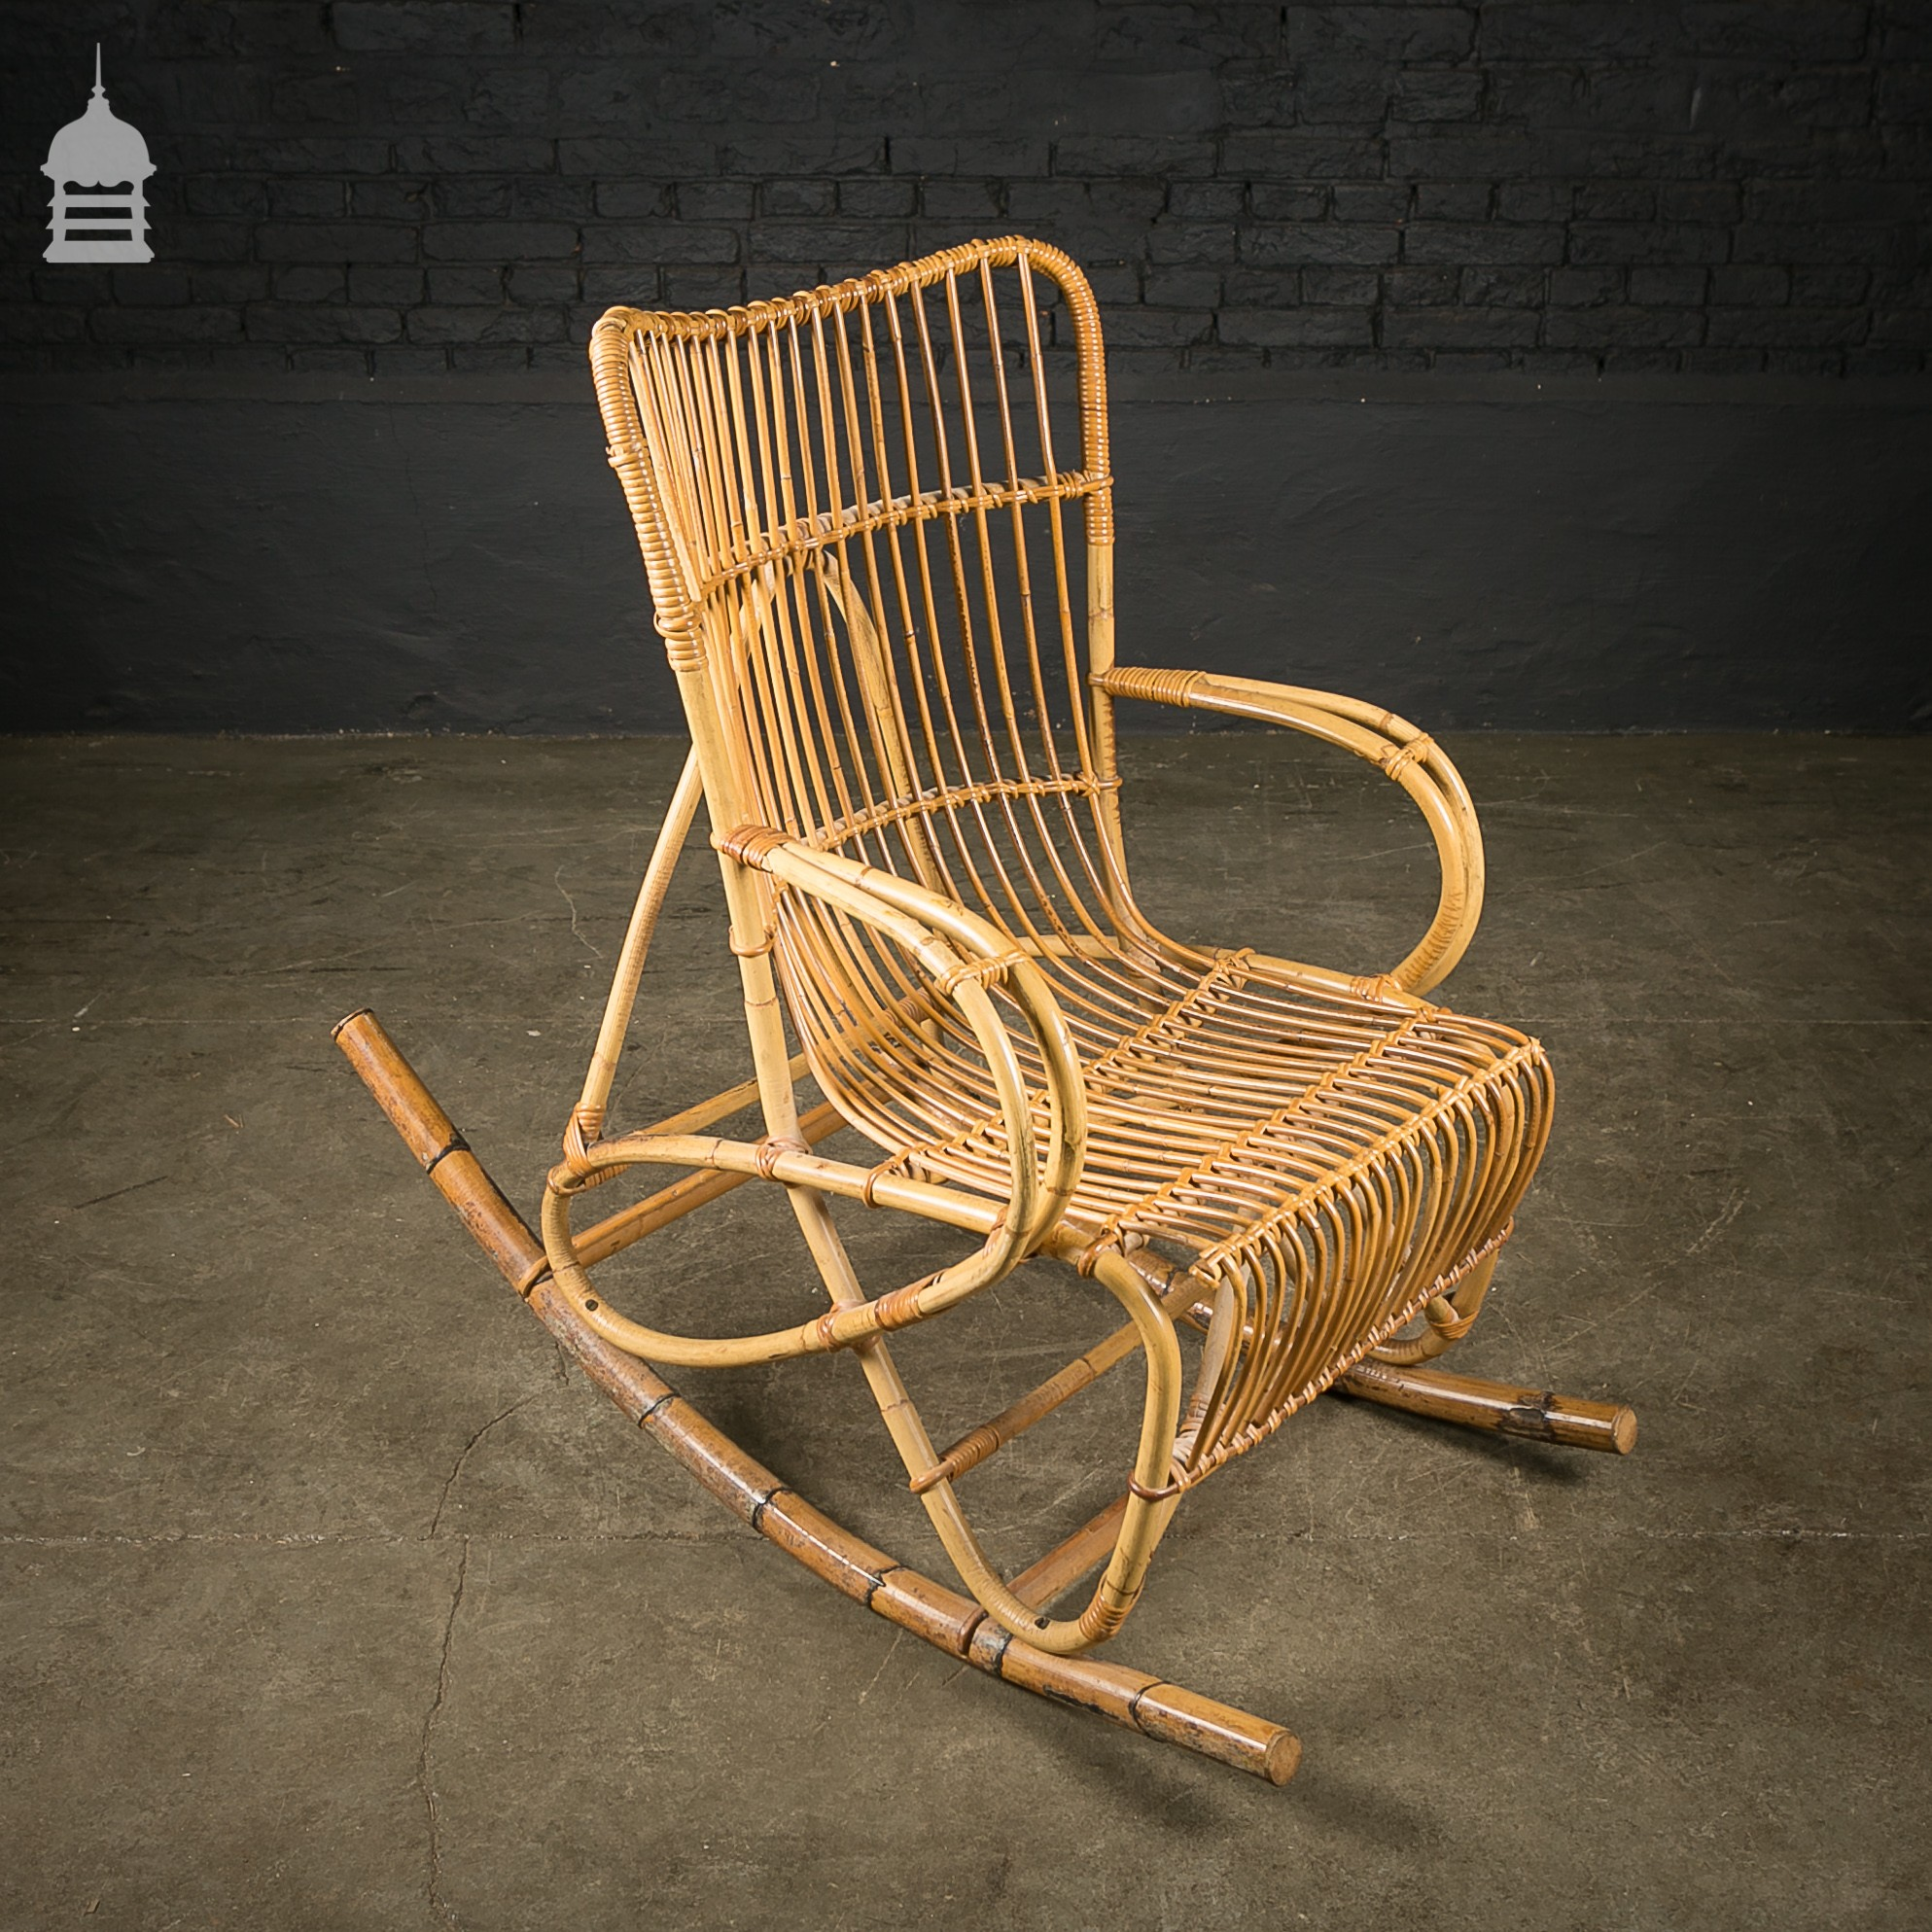 immaculate cane rocking chair. Black Bedroom Furniture Sets. Home Design Ideas